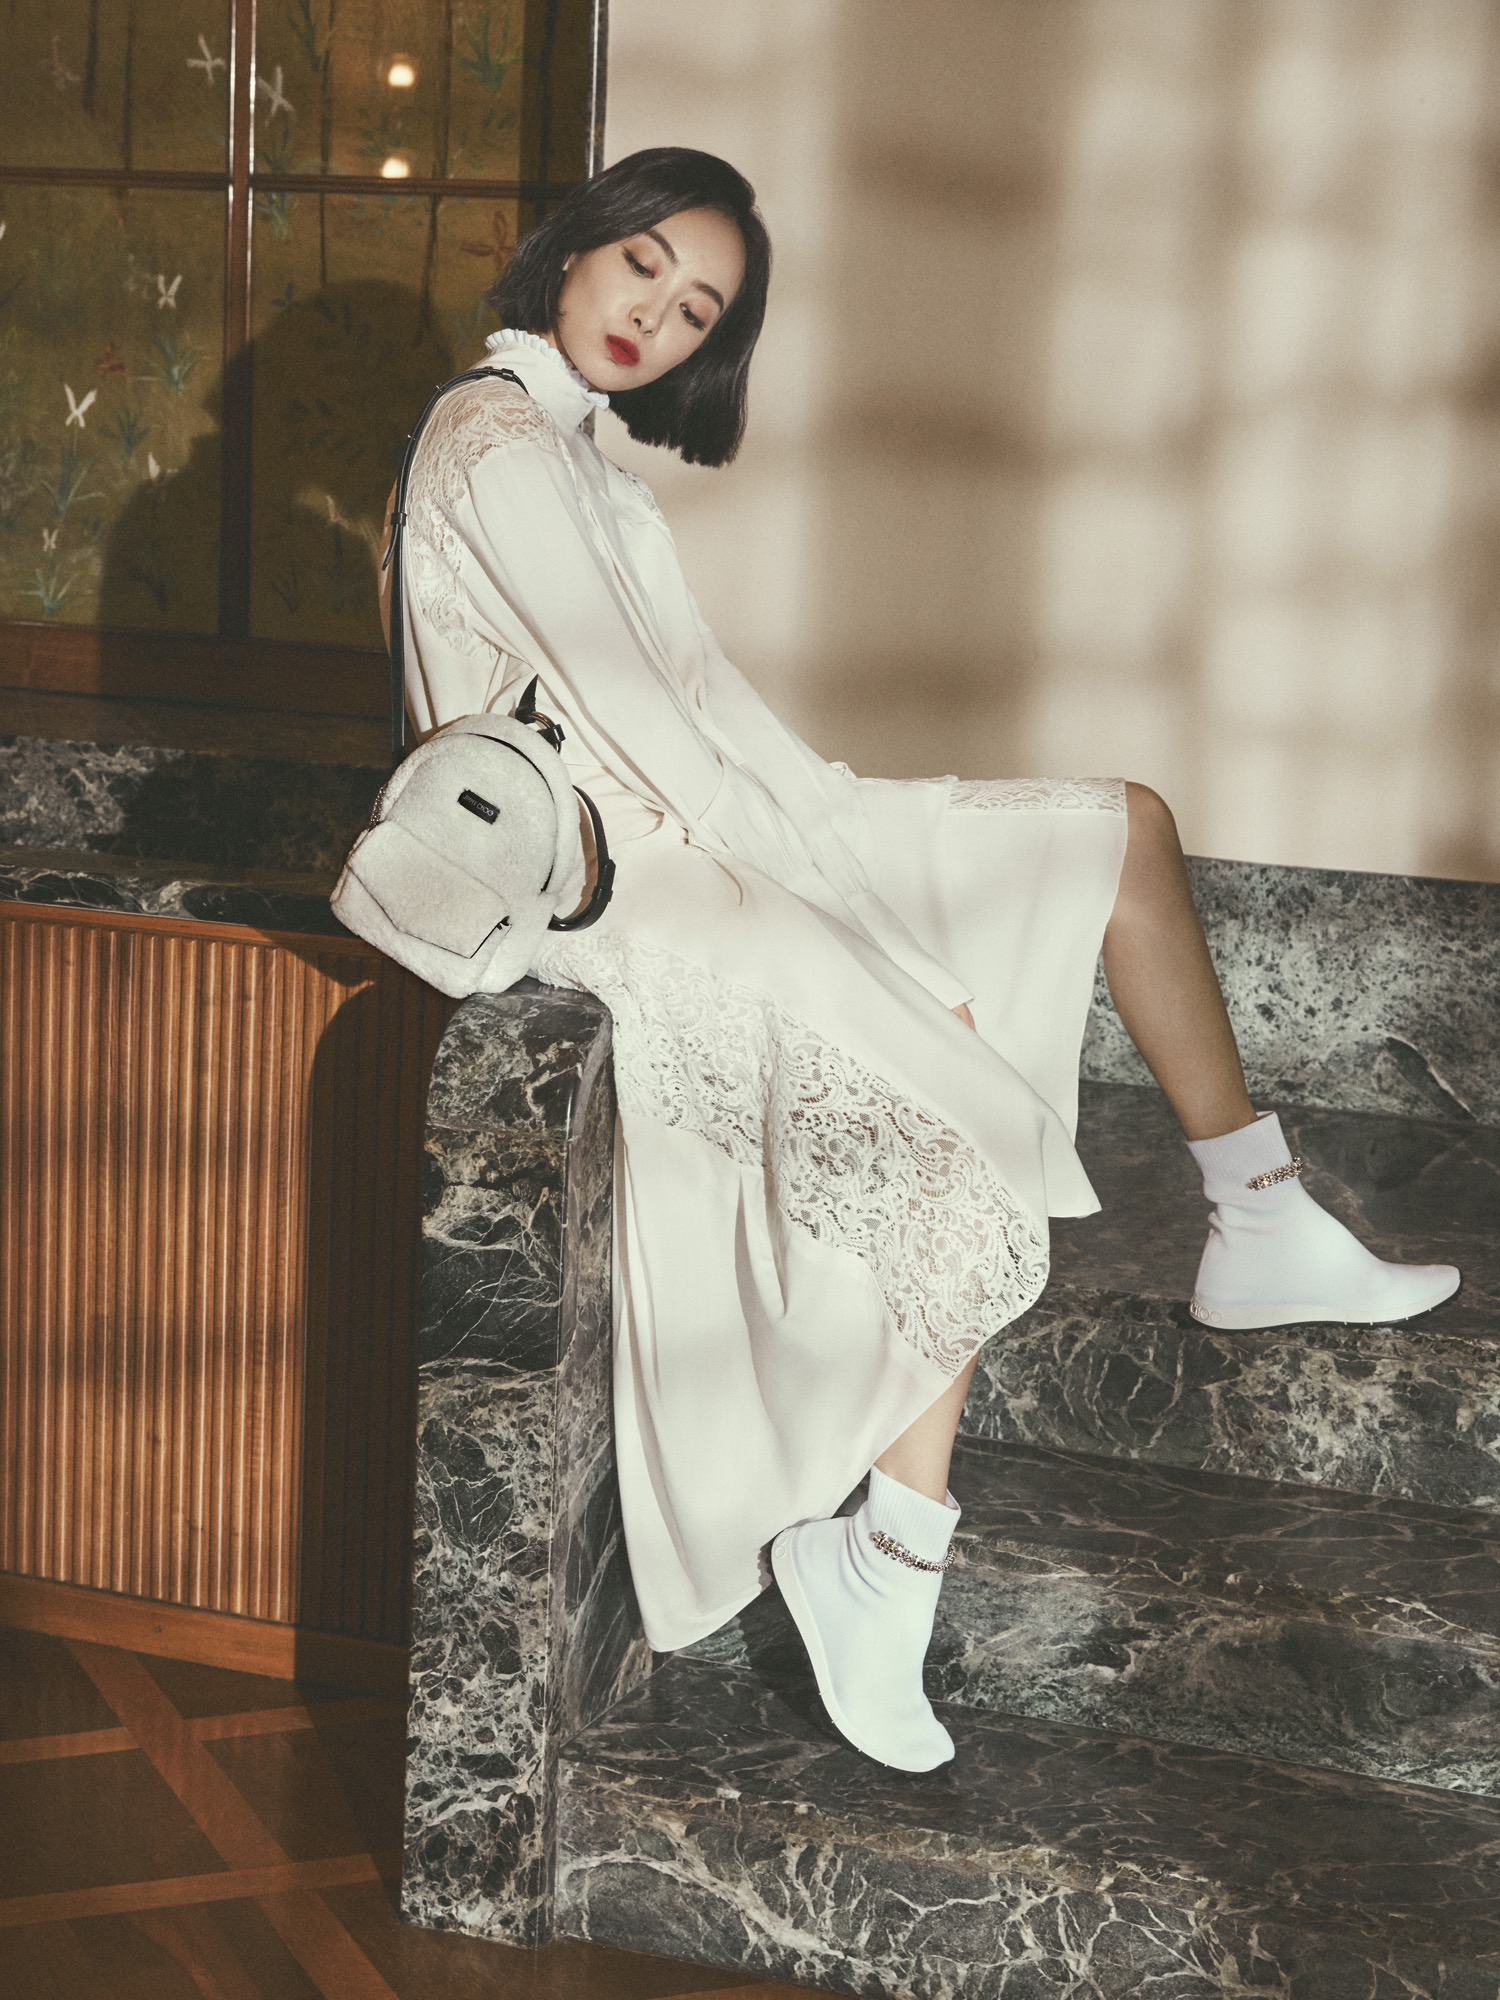 Victoria Song Qian carrying CASSIE bag and wearing REGENA trainers